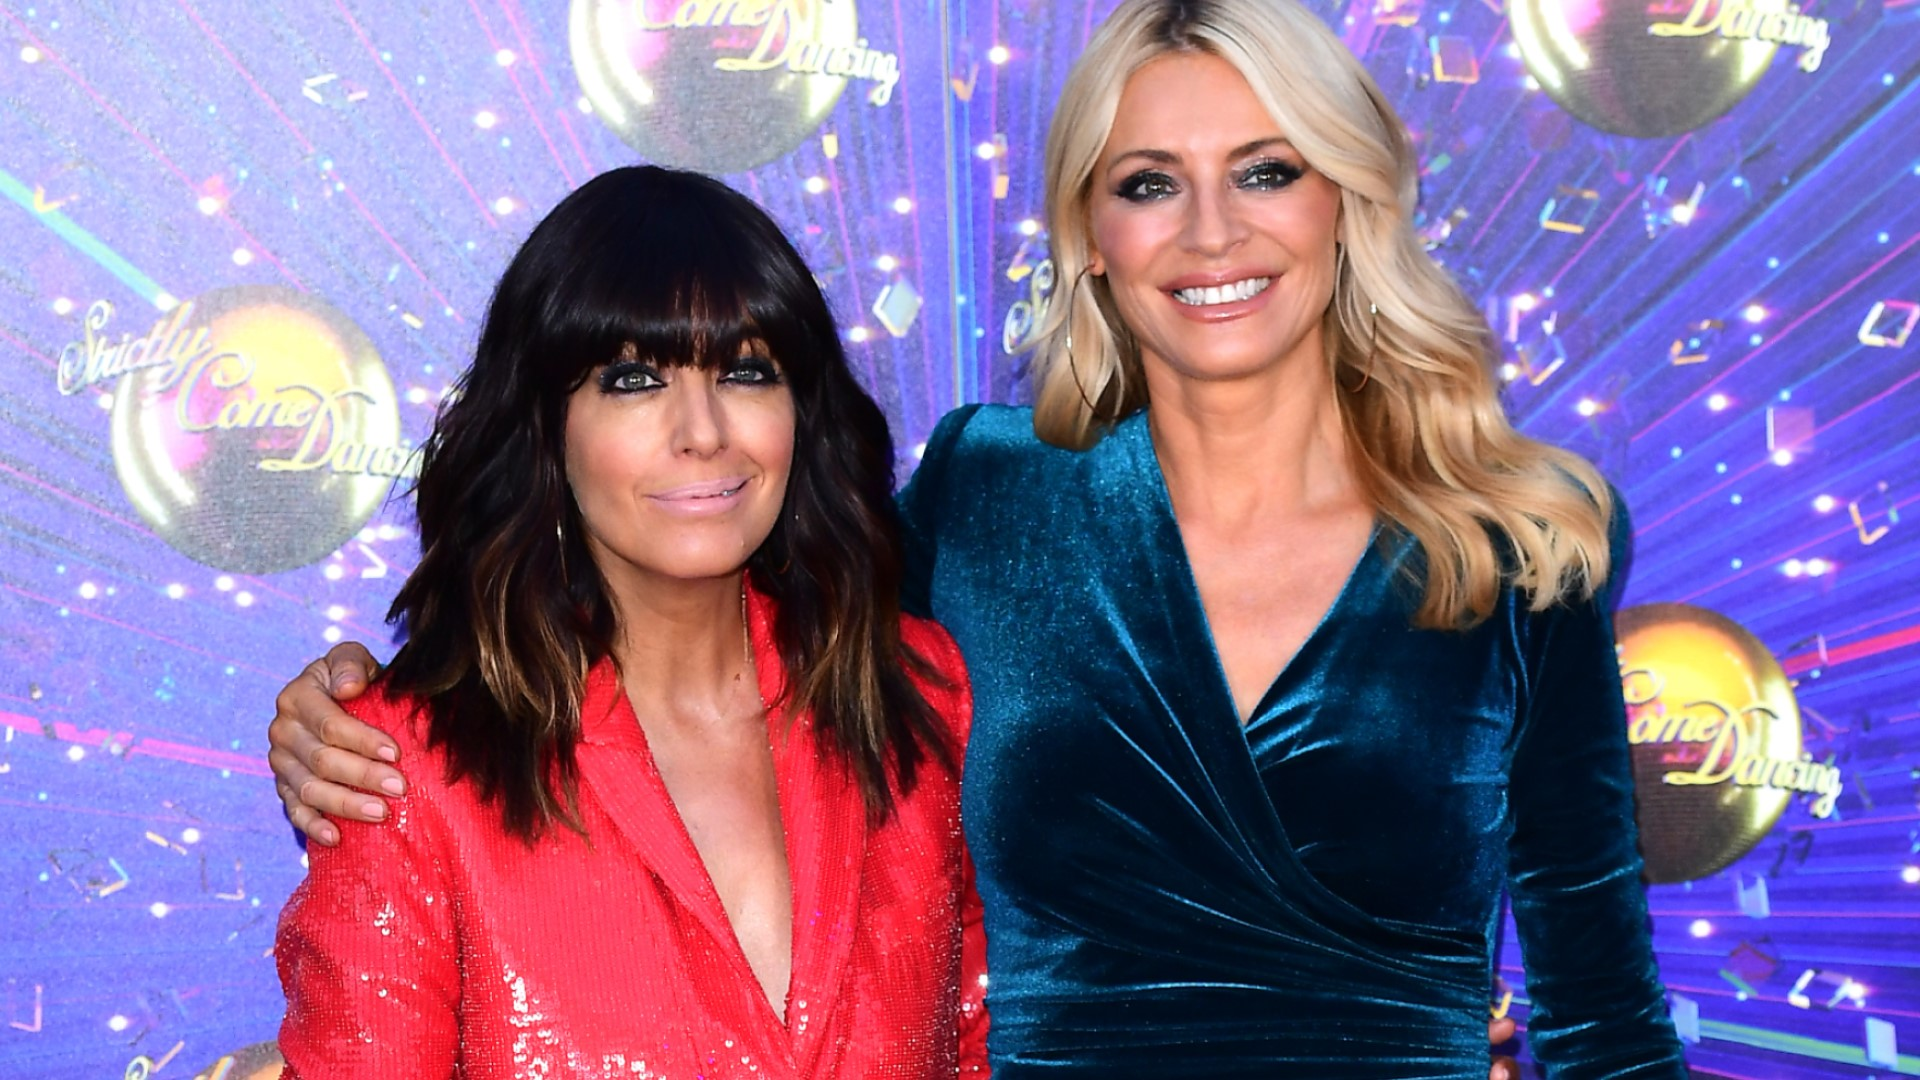 Strictly 2021: Things you didn't know about the celebrity contestants